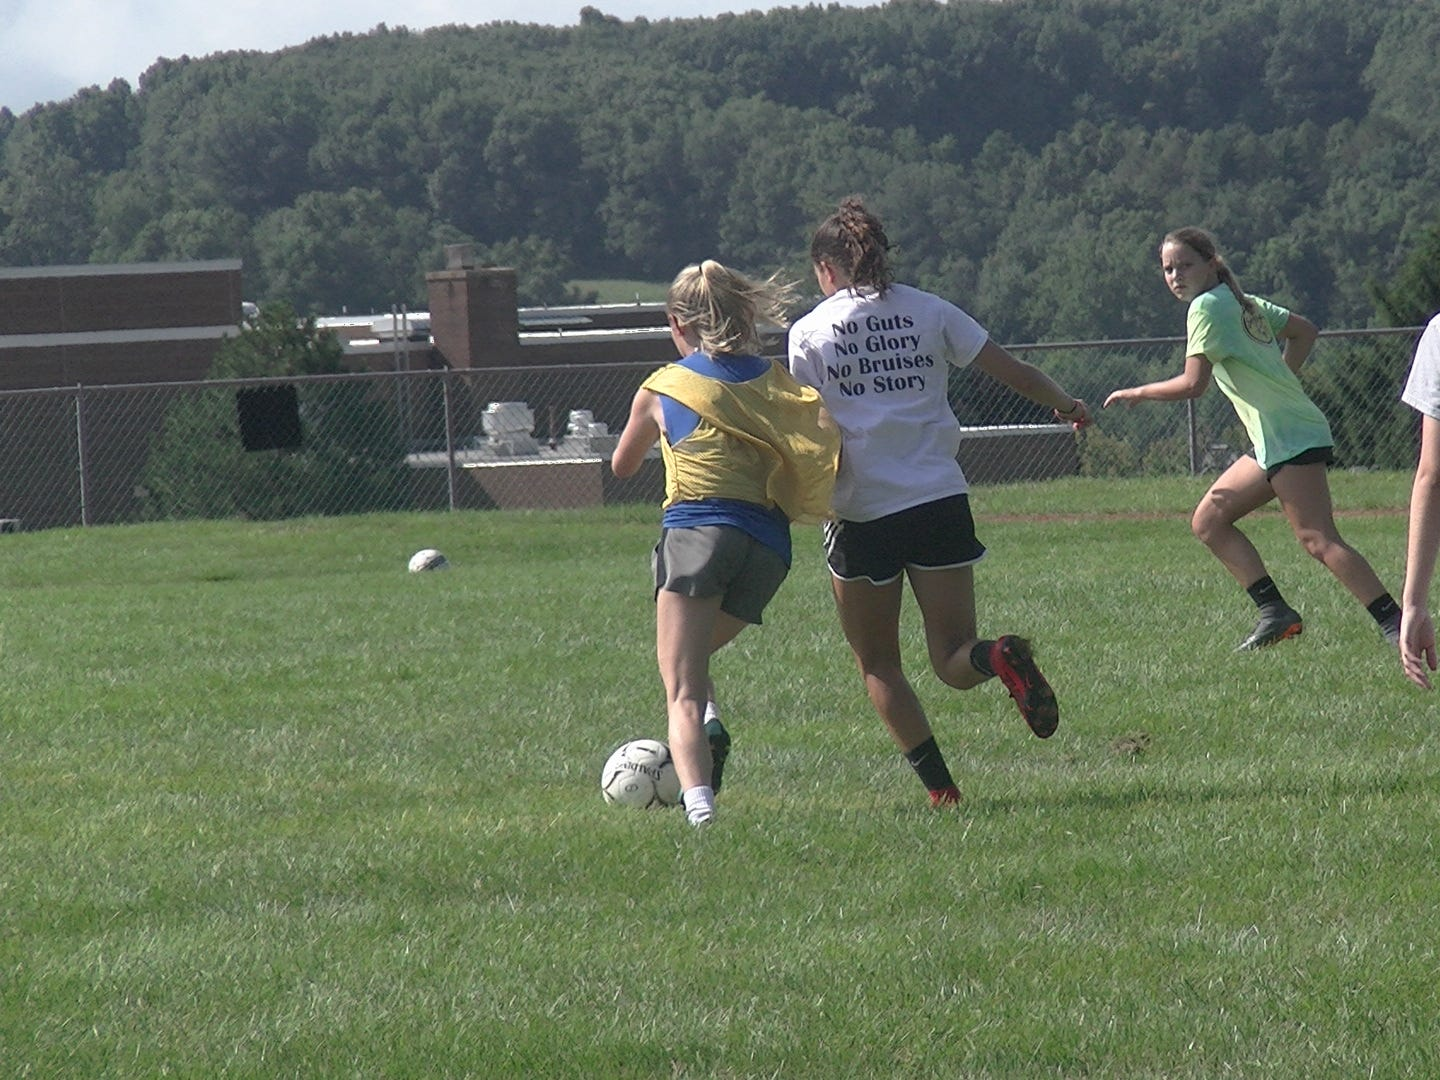 Susquehannock girls' soccer players compete for the ball during a scrimmage on Monday.